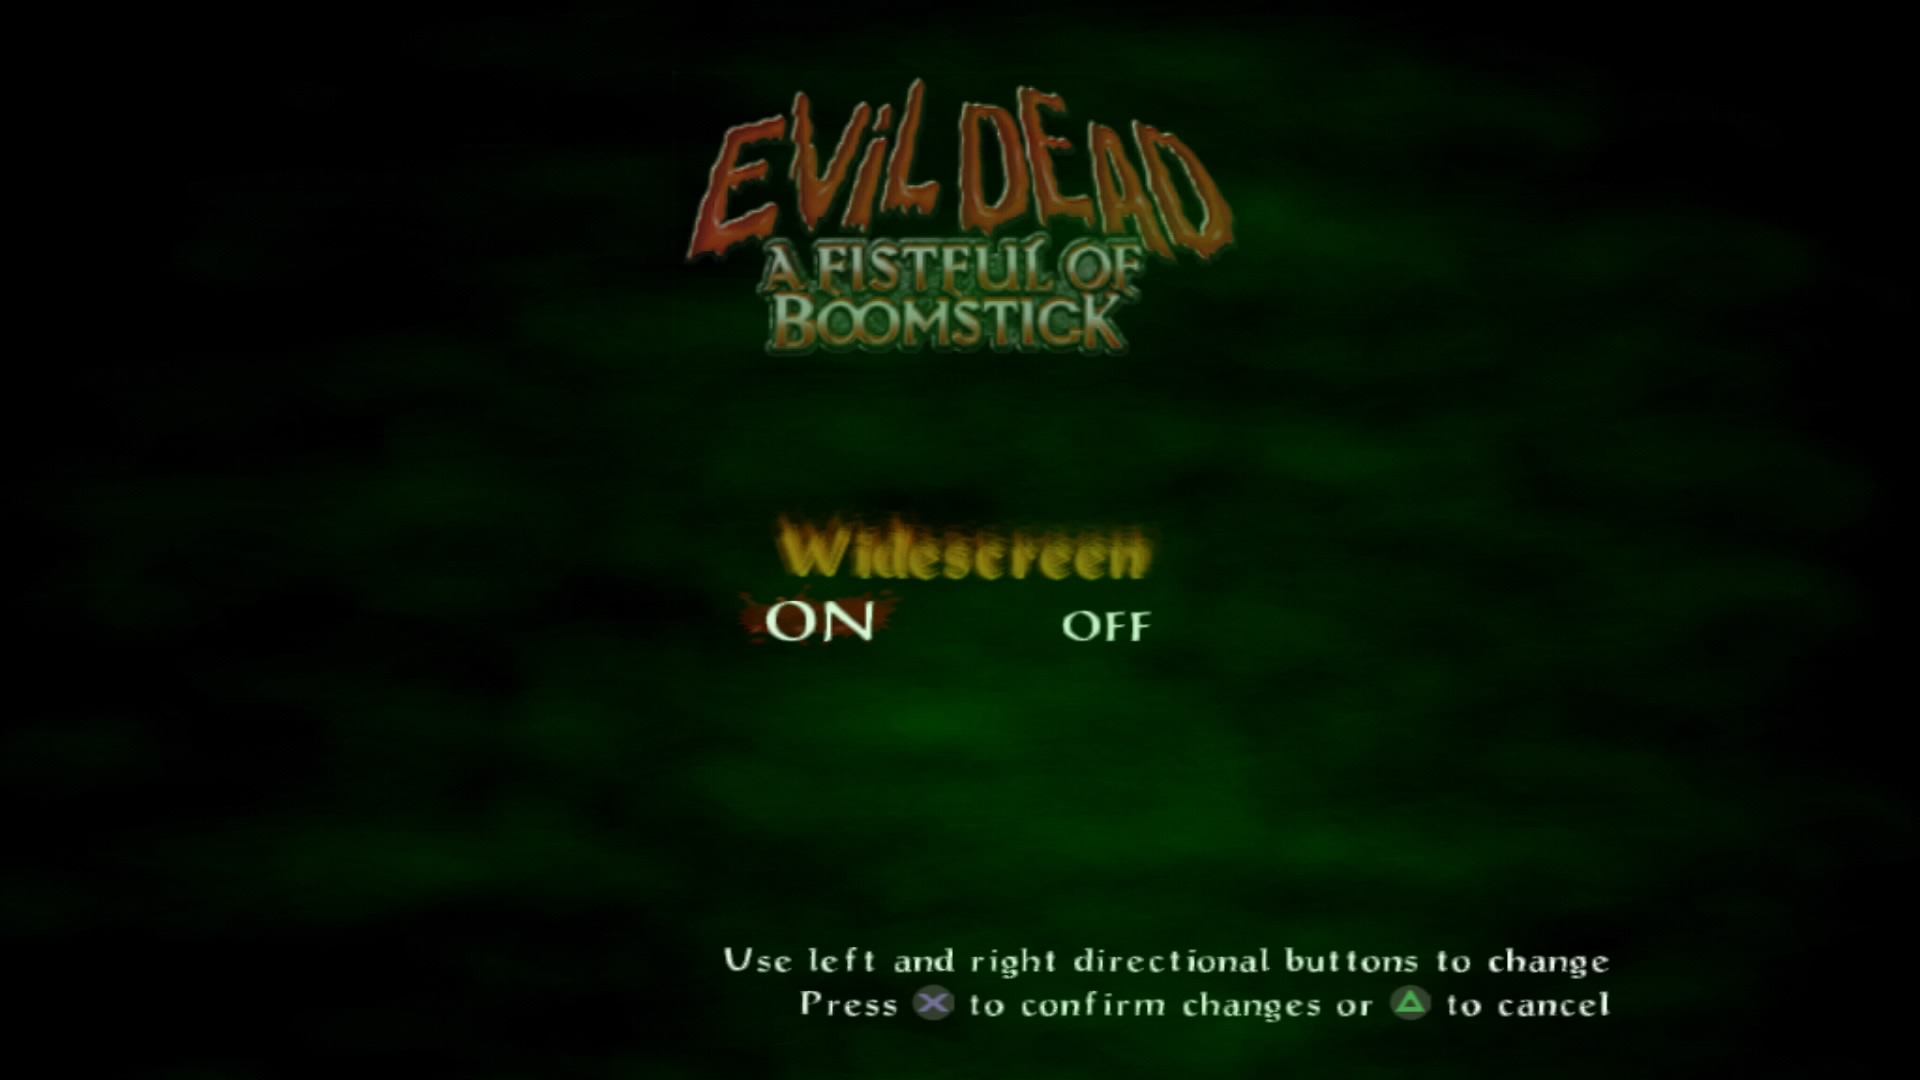 [PS4-PS2] Evil Dead: A Fistful of Boomstick